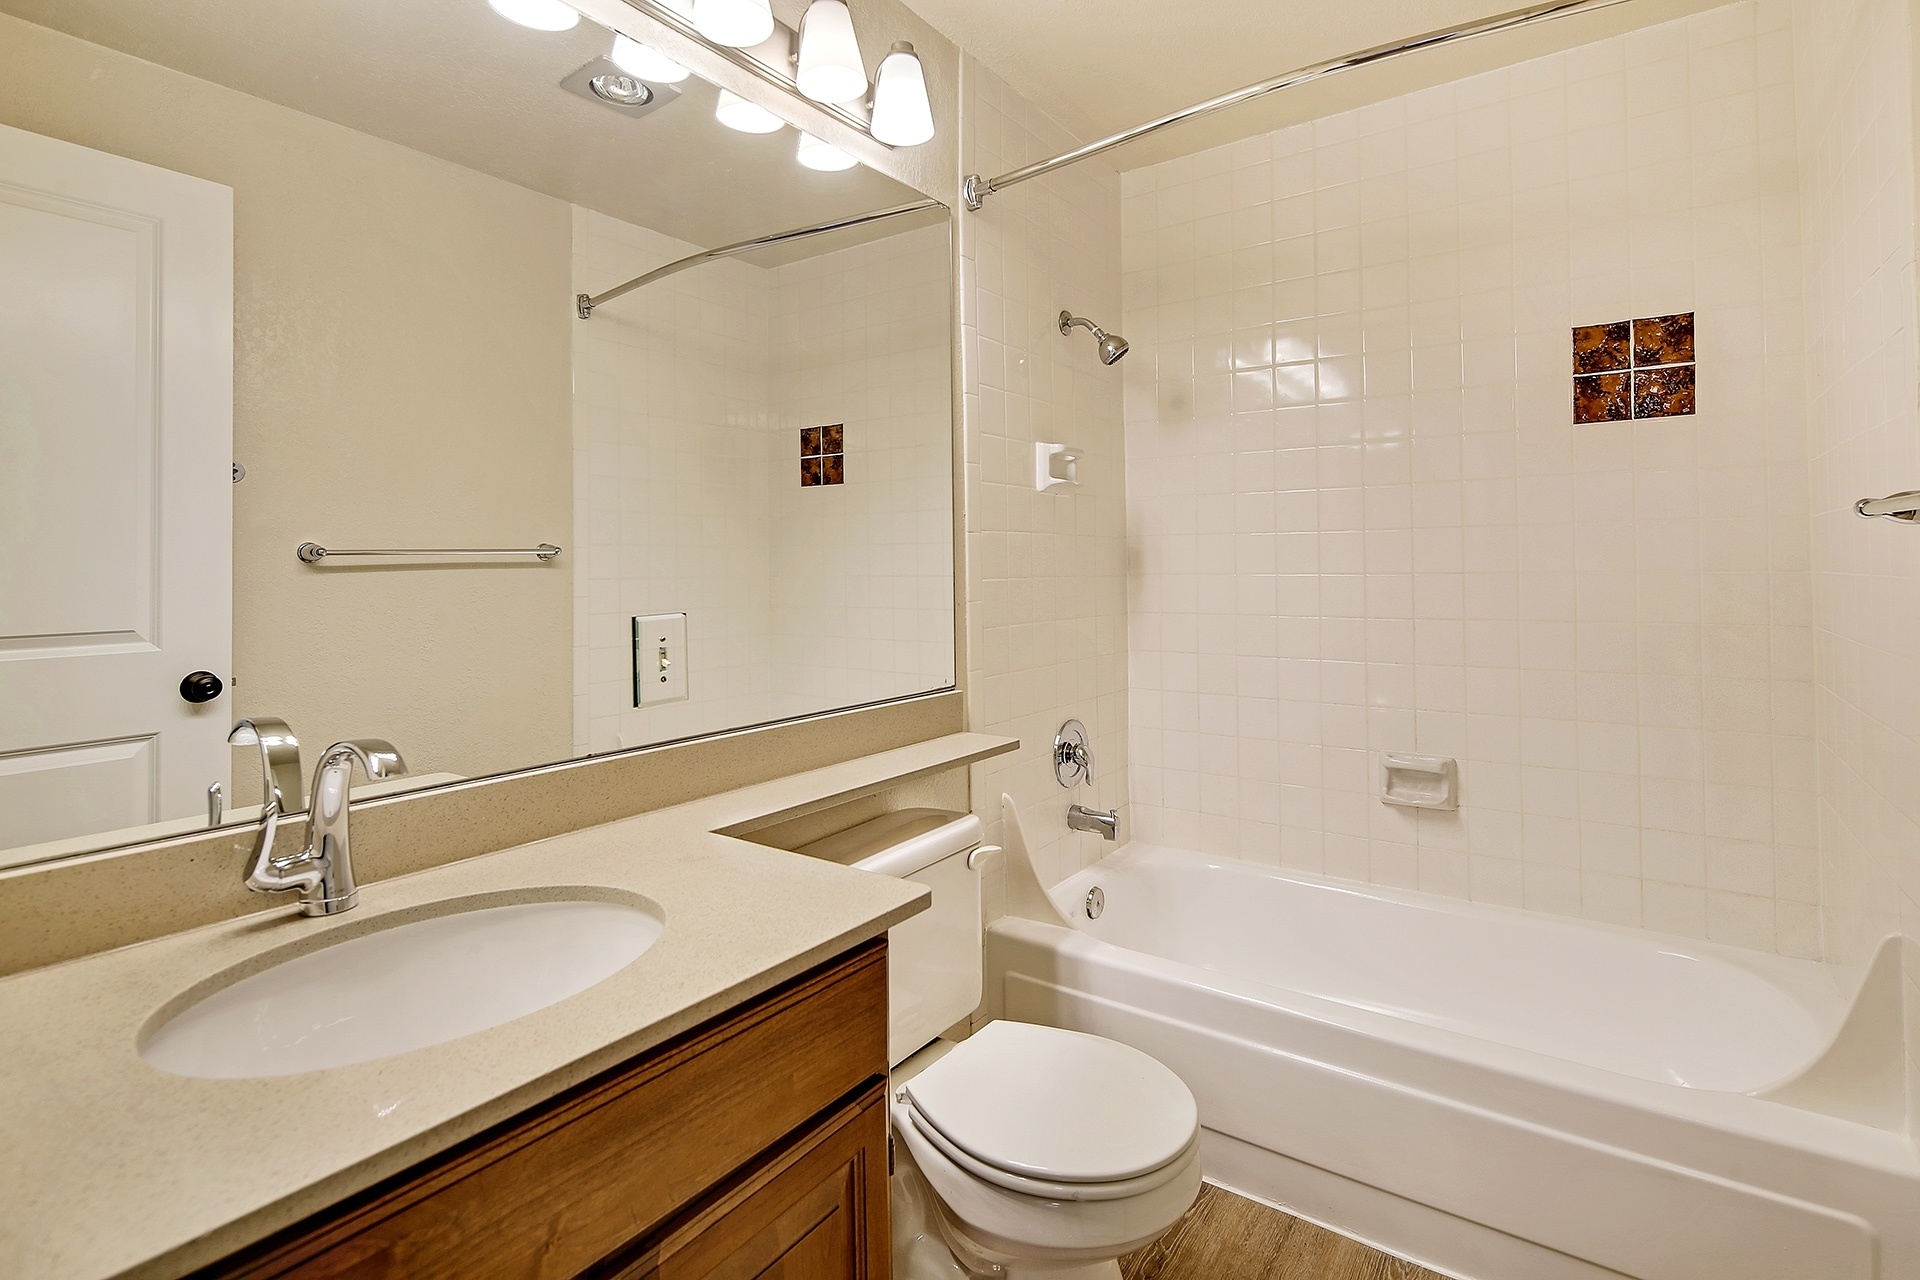 2X2 Full Renovation Bathroom 2 Pinewood Village Apartments 2X2 Bathroom Design